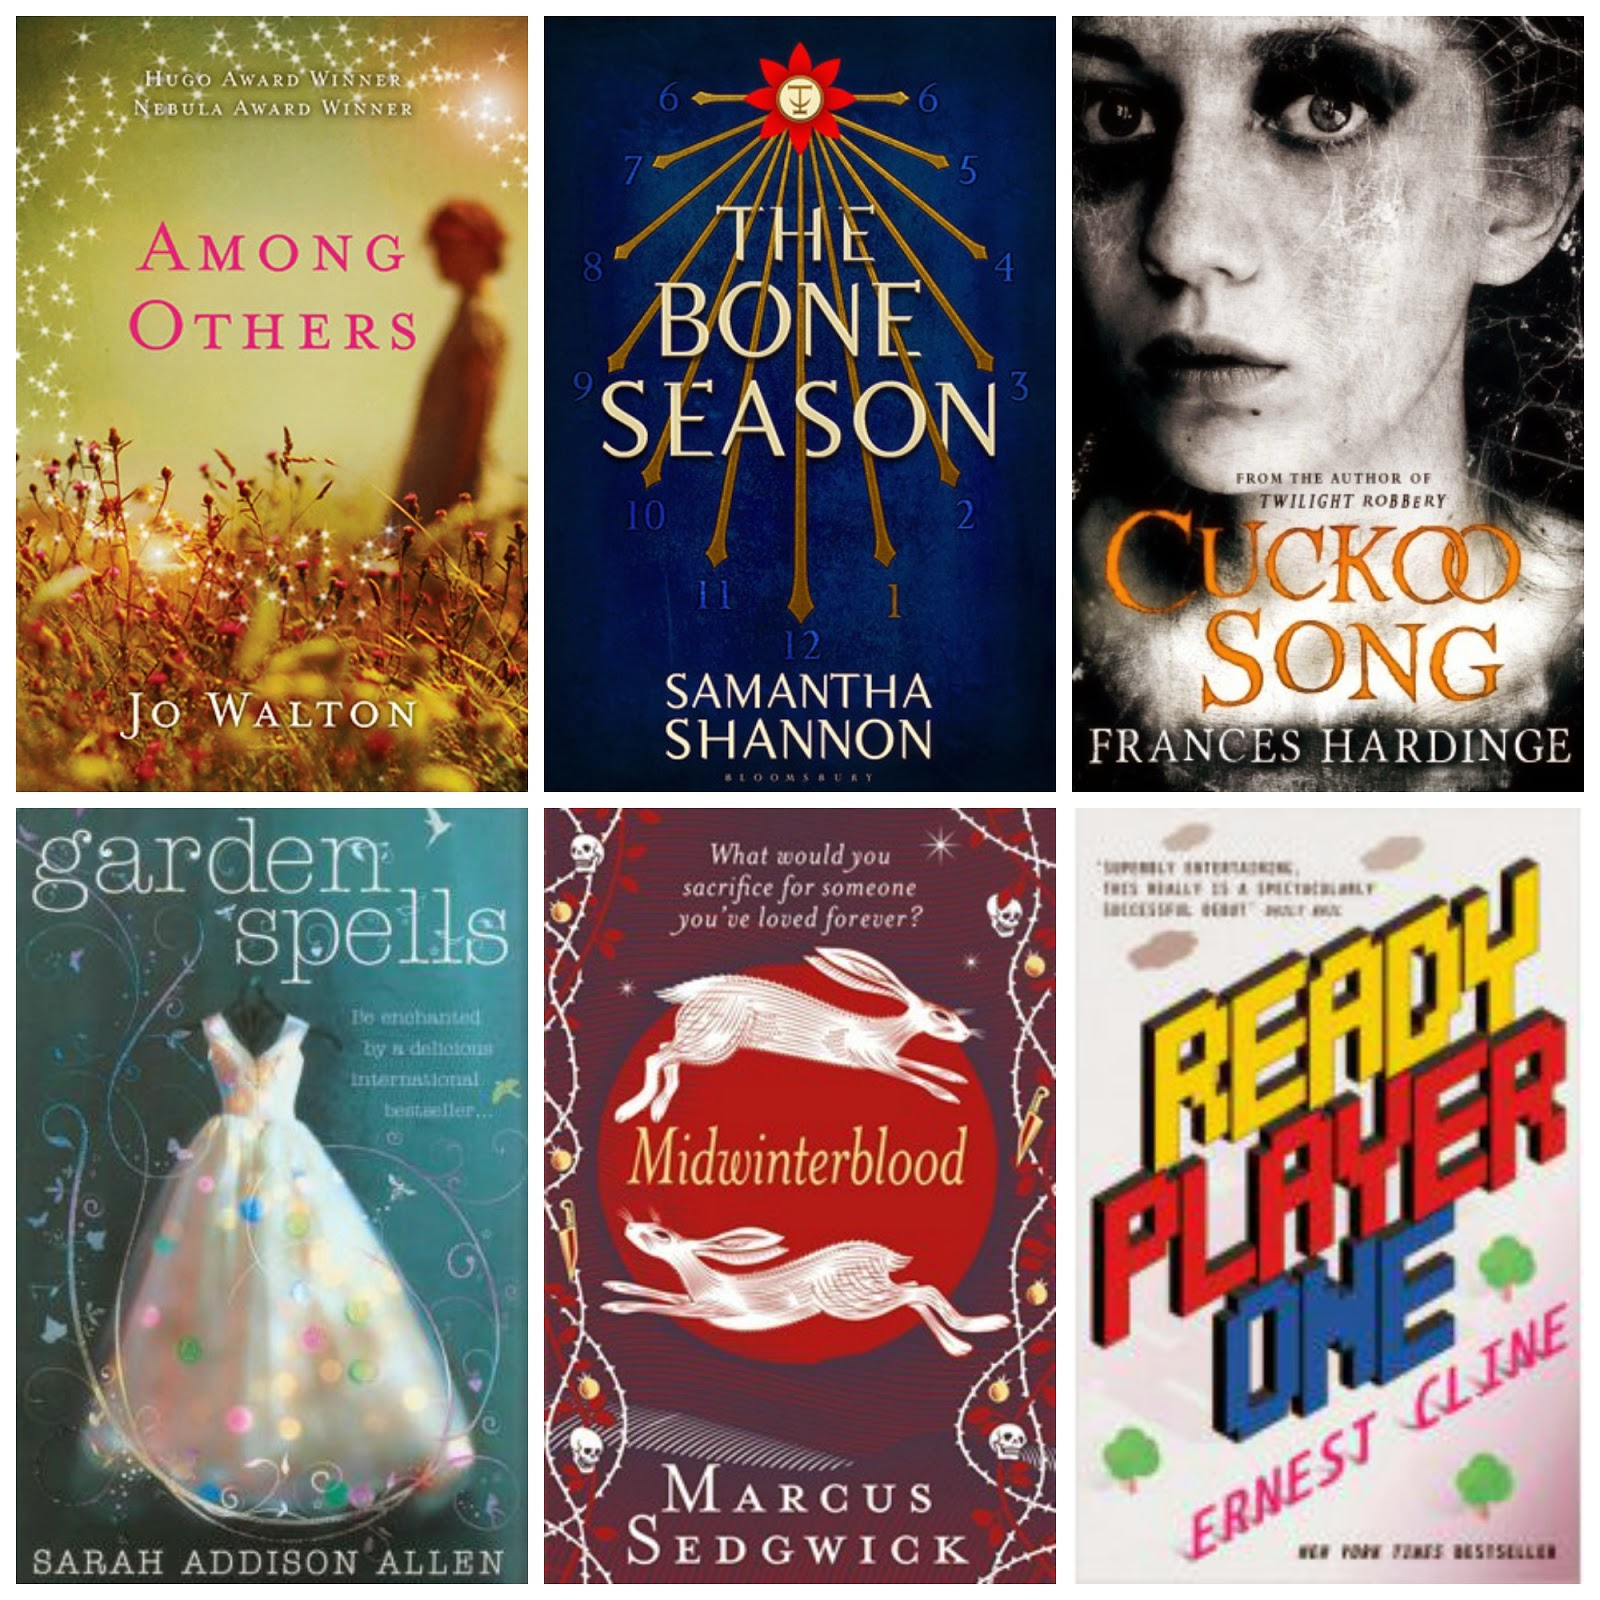 Marianne curley goodreads giveaways